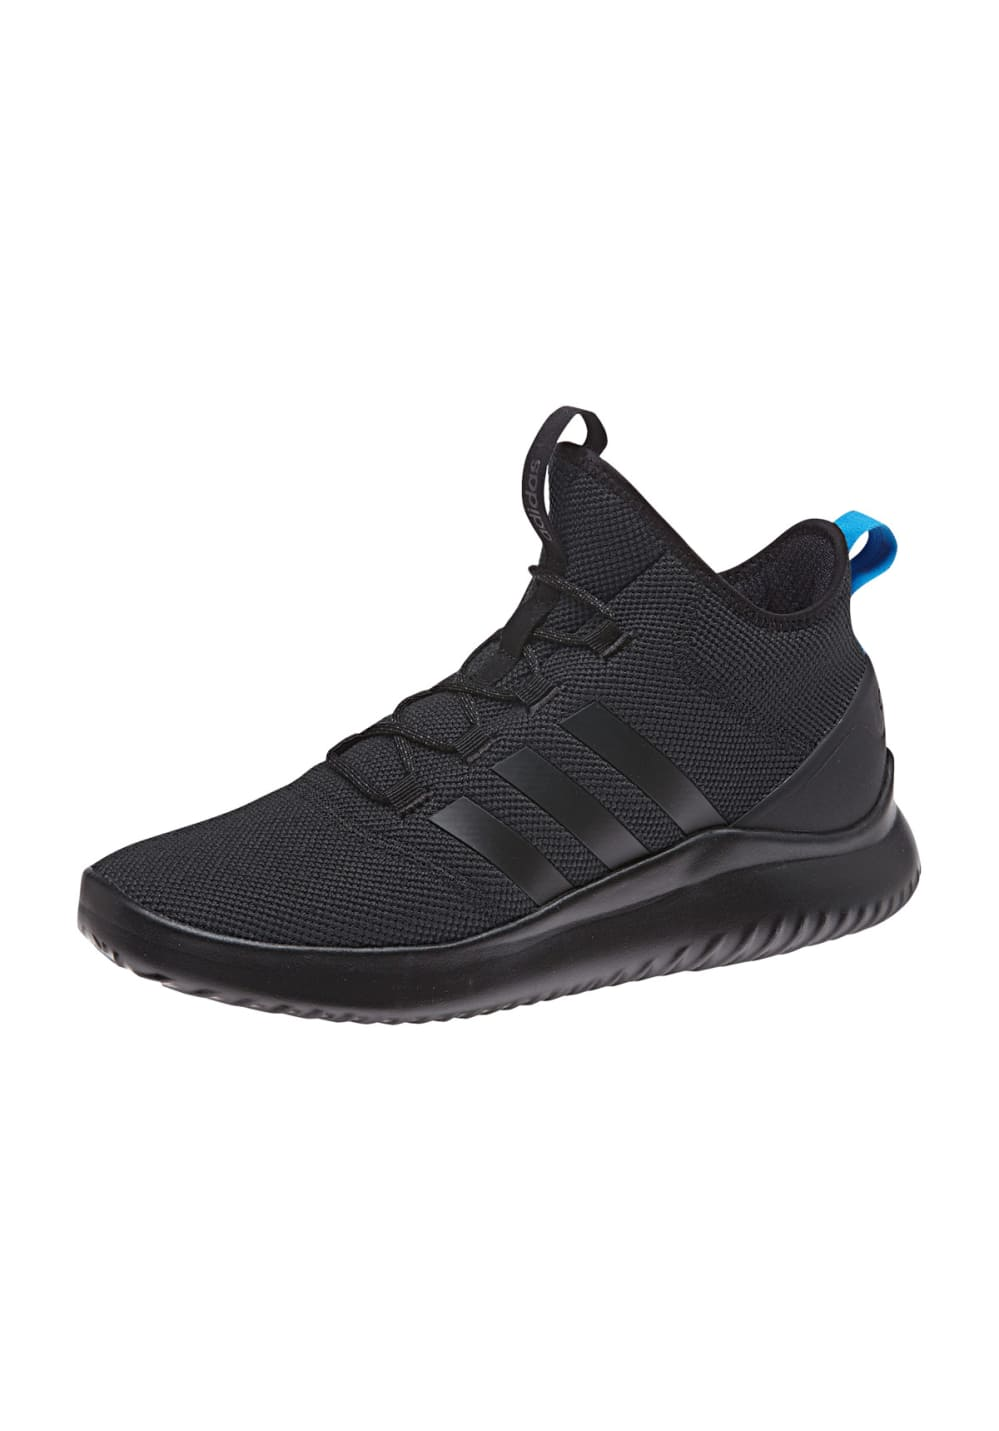 f6d32c5a7cba ... adidas neo Cf Ultimate Bball - Indoor shoes for Men - Black. Back to  Overview. -60%